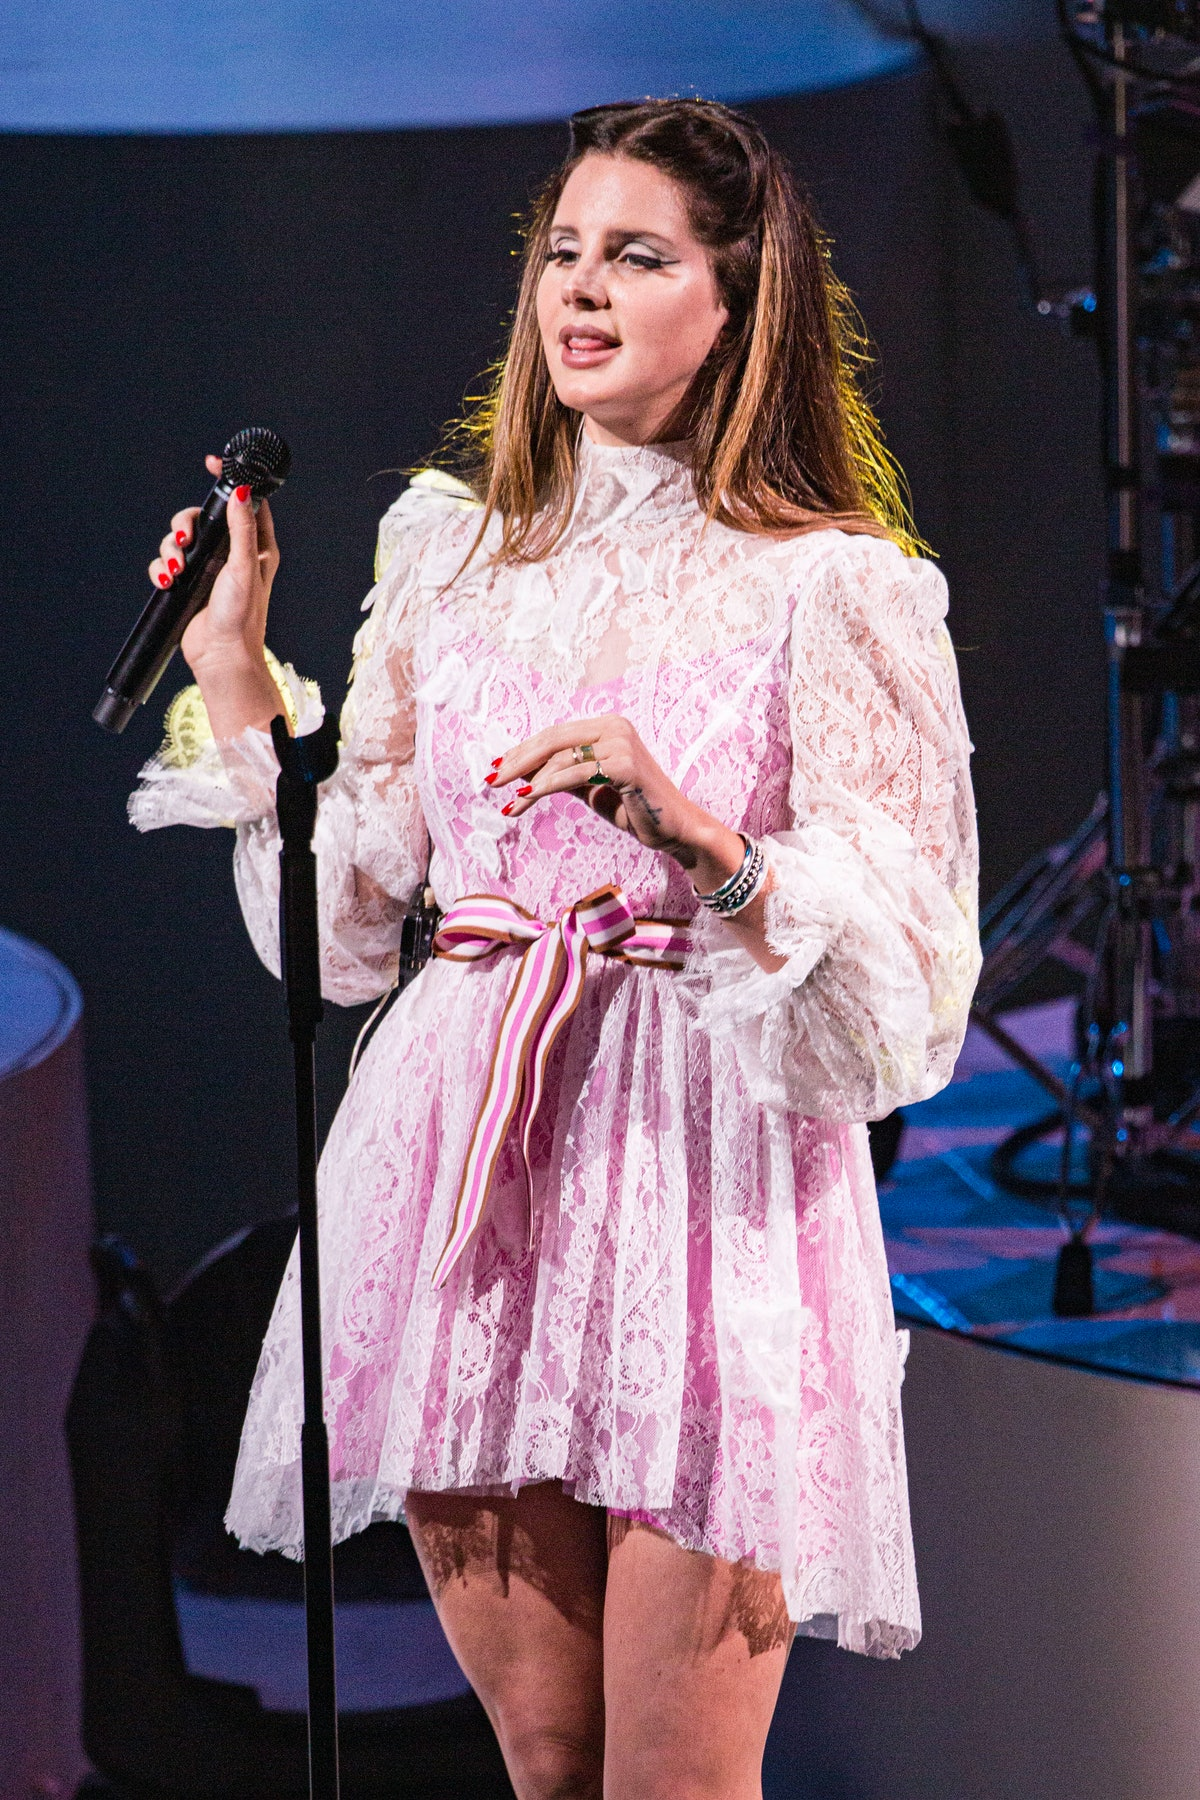 Lana Del Rey performing on stage in a pink babydoll dress